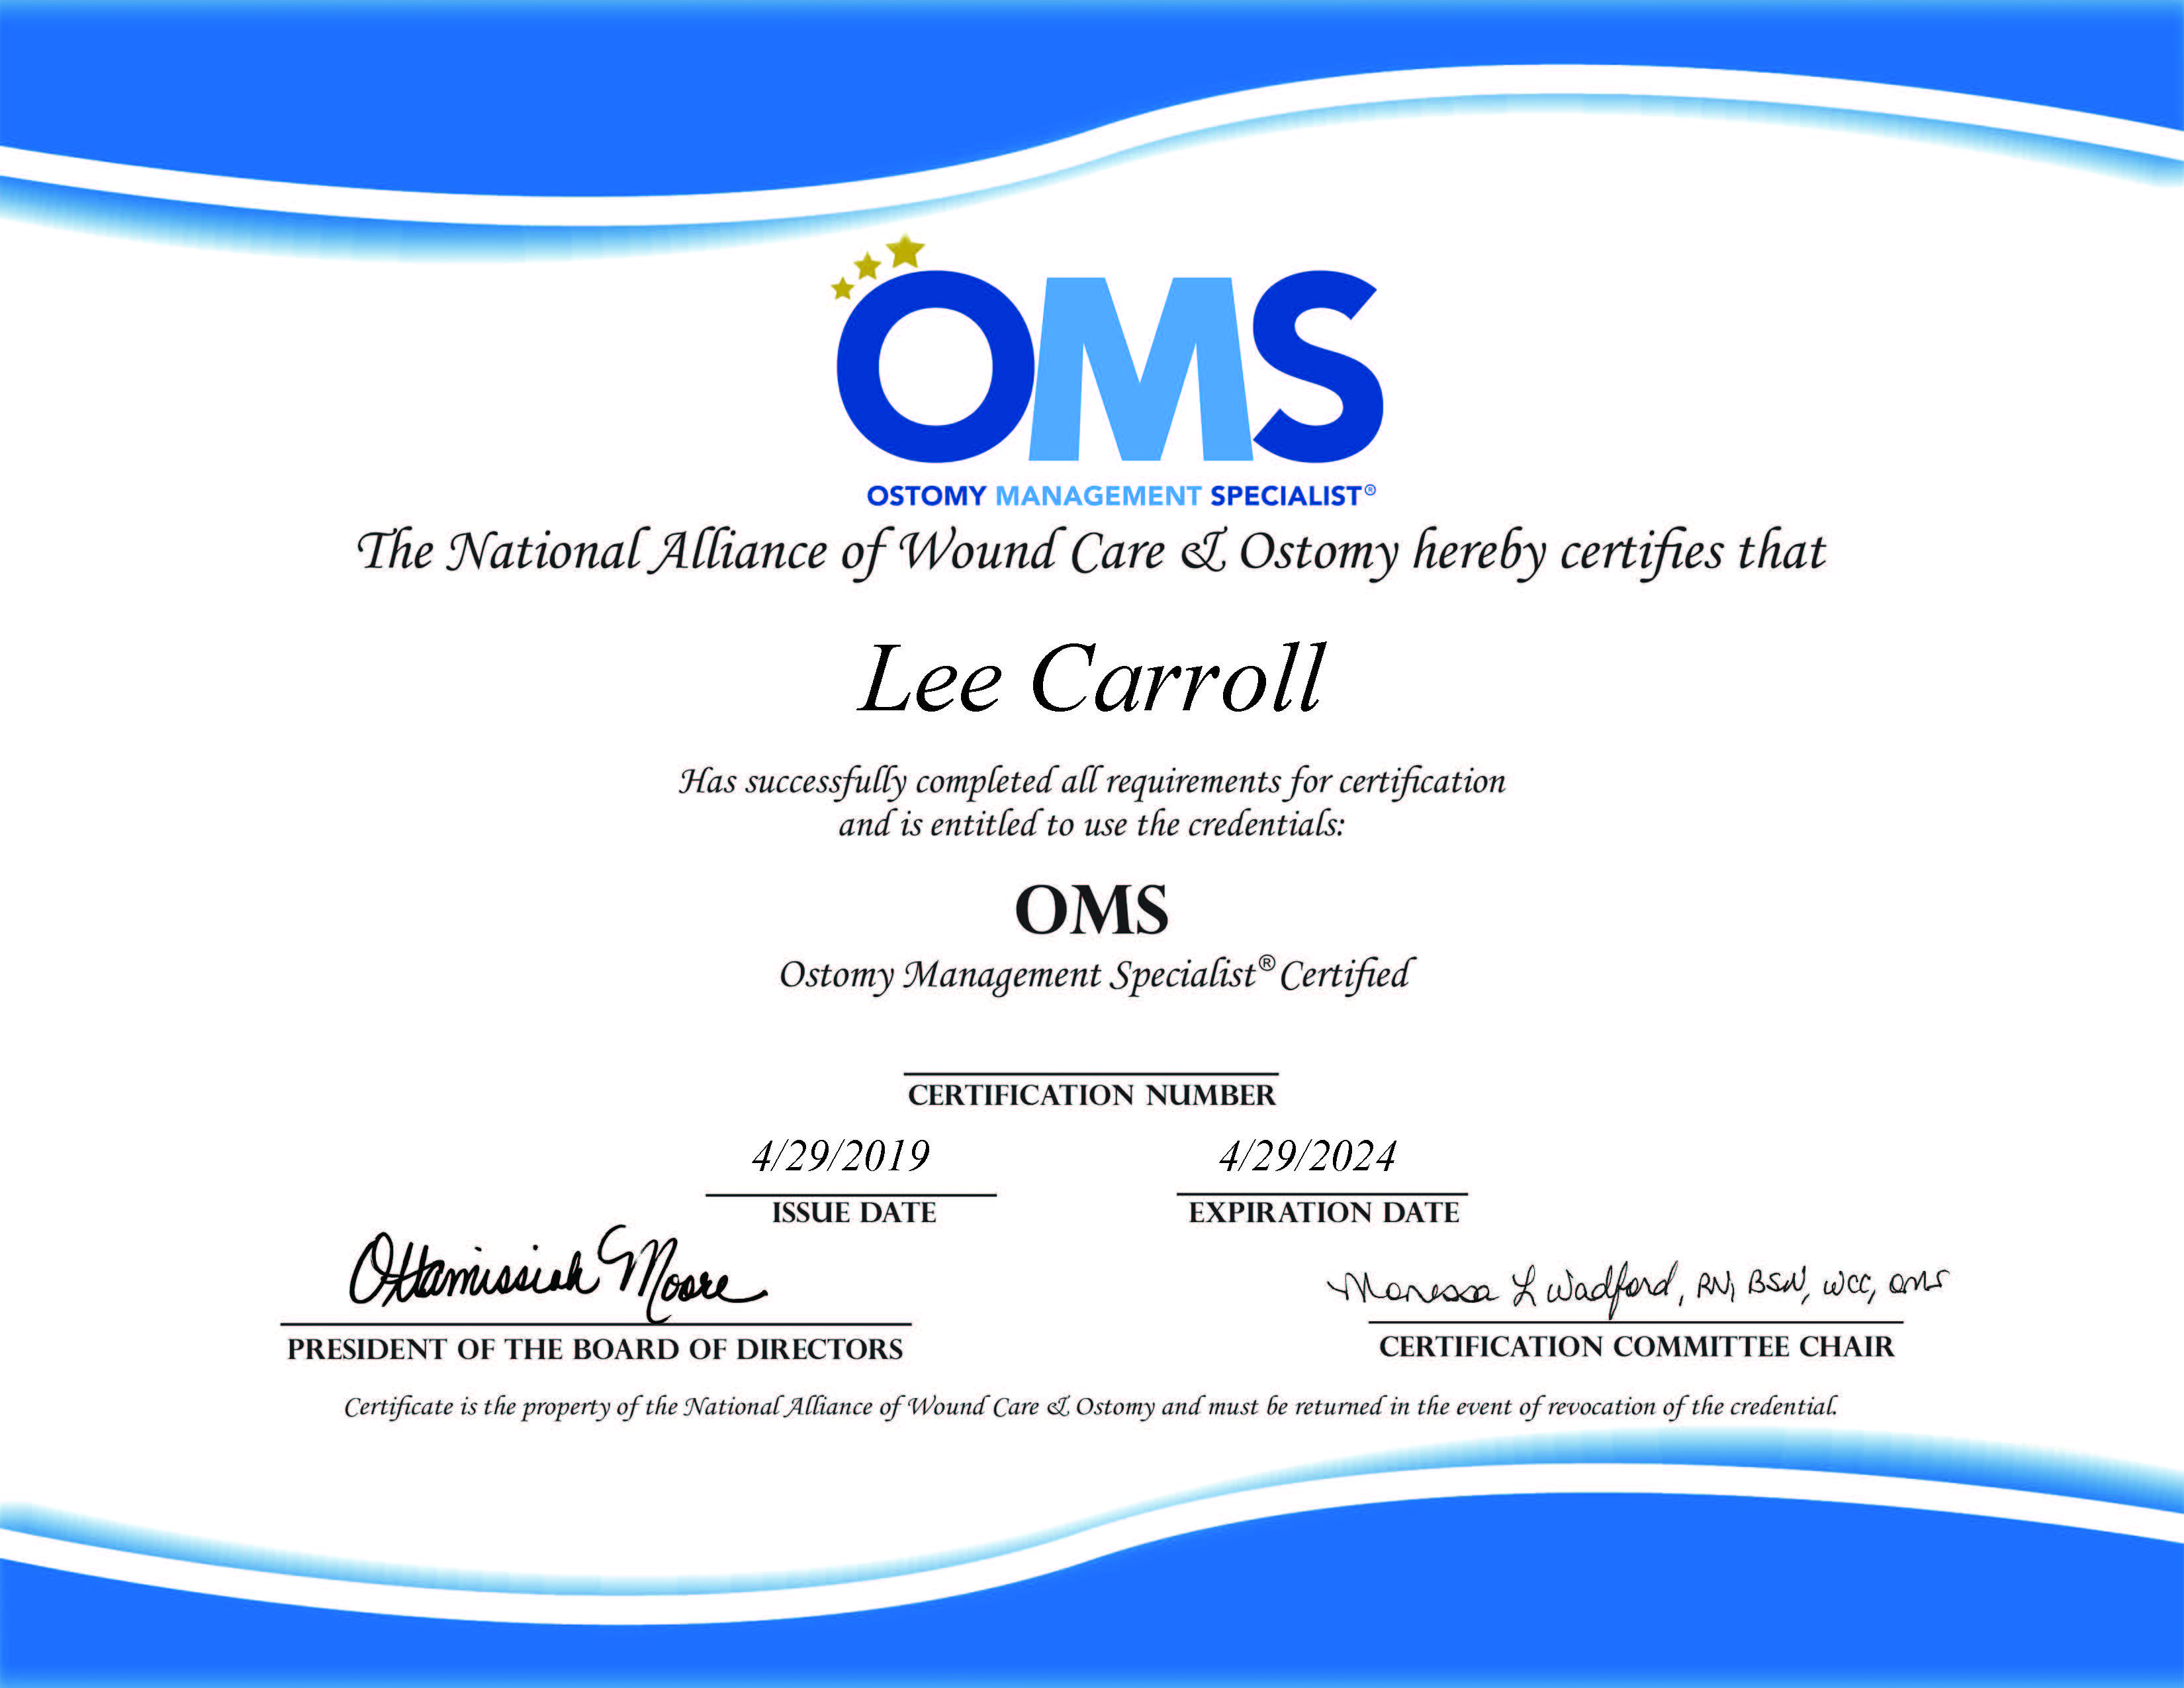 Commonwealth Care Of Roanoke Ostomy Management Specialist Certification Ccr Inc